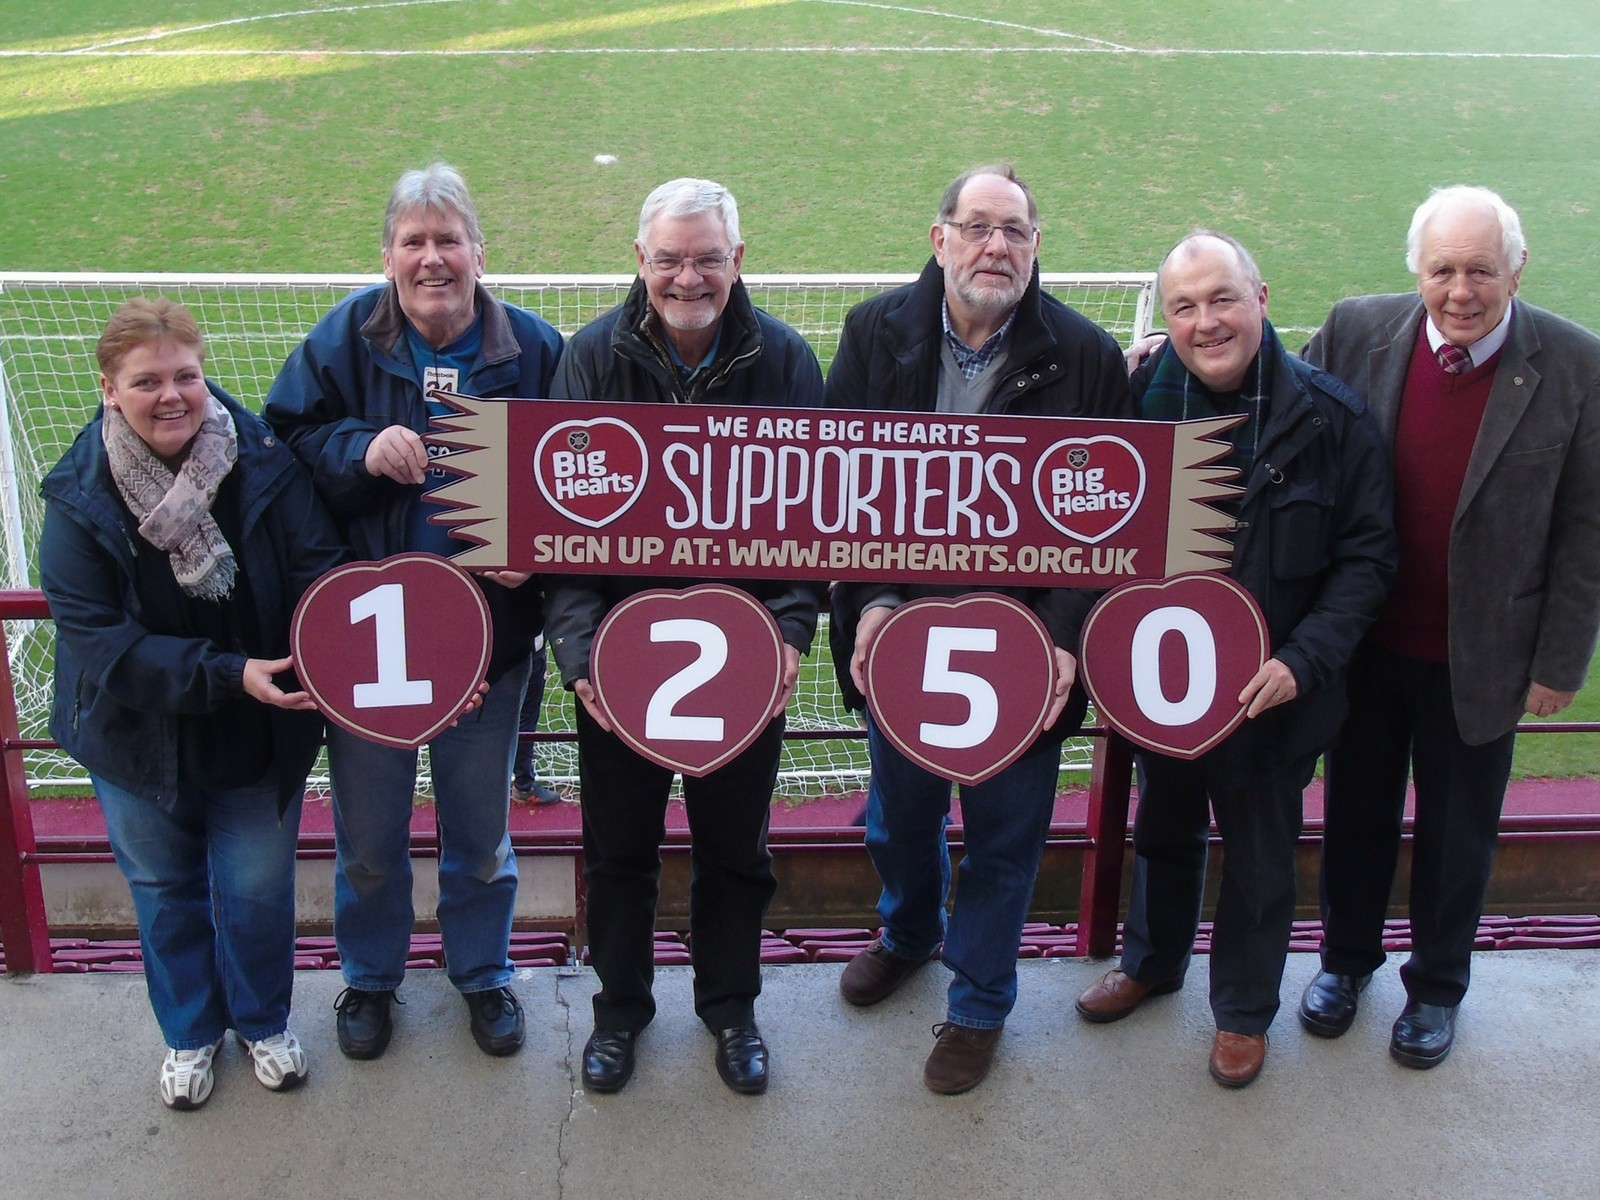 » Over 1250 Big Hearts Supporters Helping make a BIG Difference!